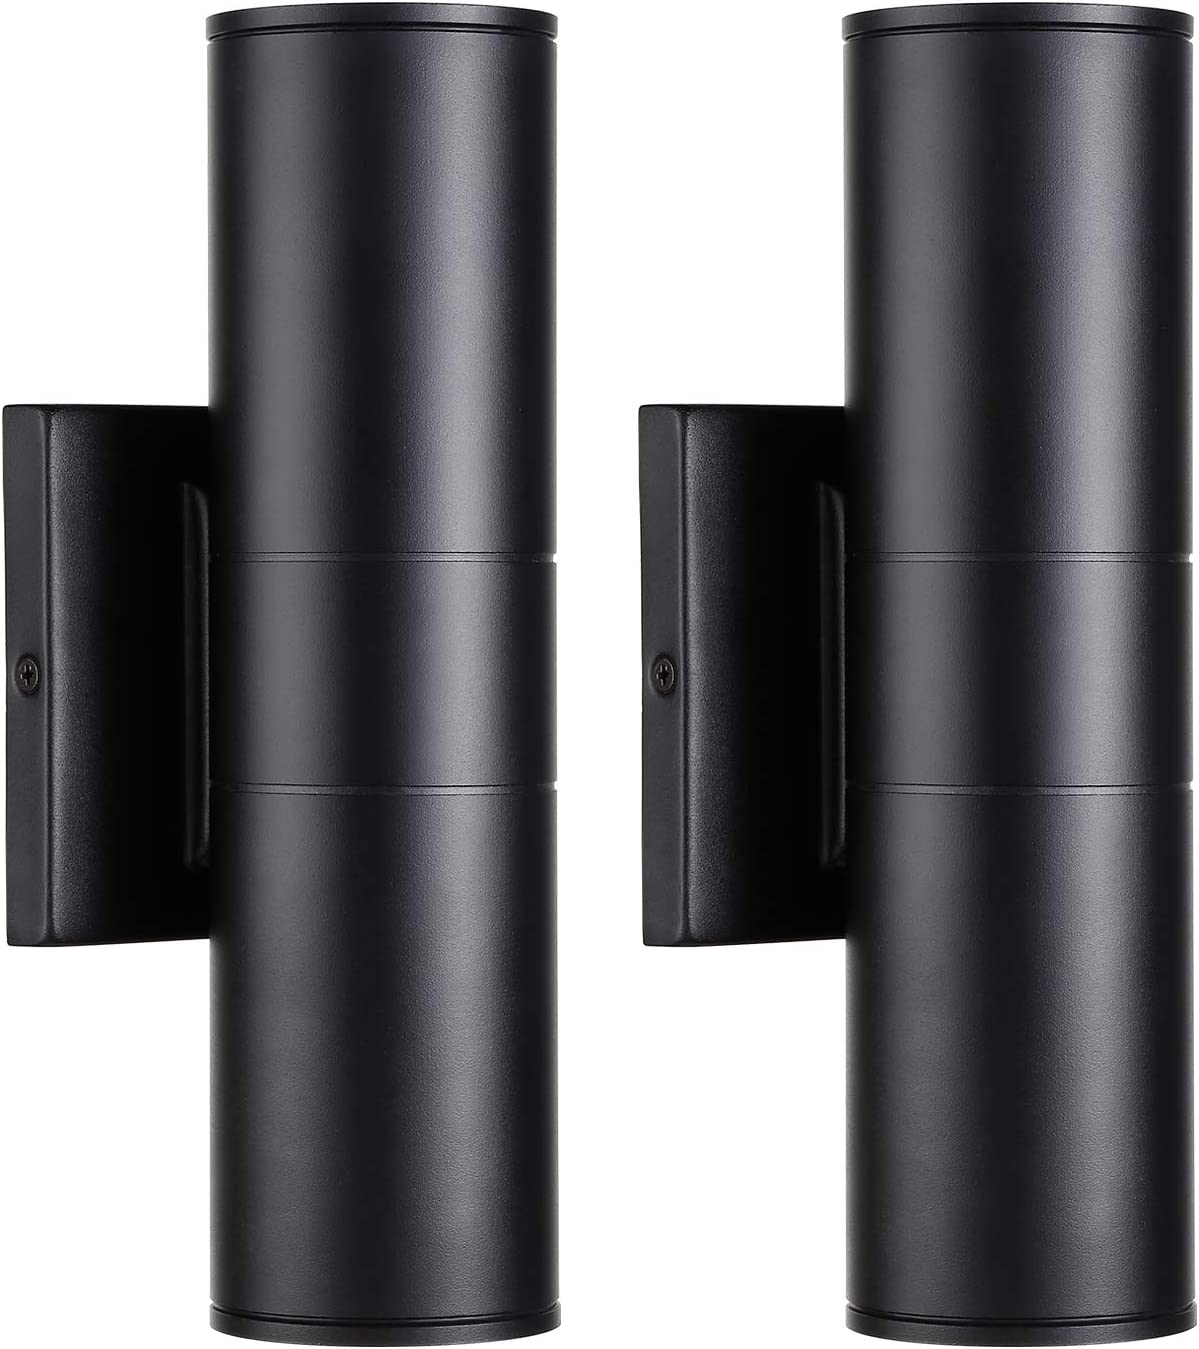 LEONLITE LED Cylinder Up Down Wall 20W Out Light Modern 1400lm SALENEW very Max 76% OFF popular